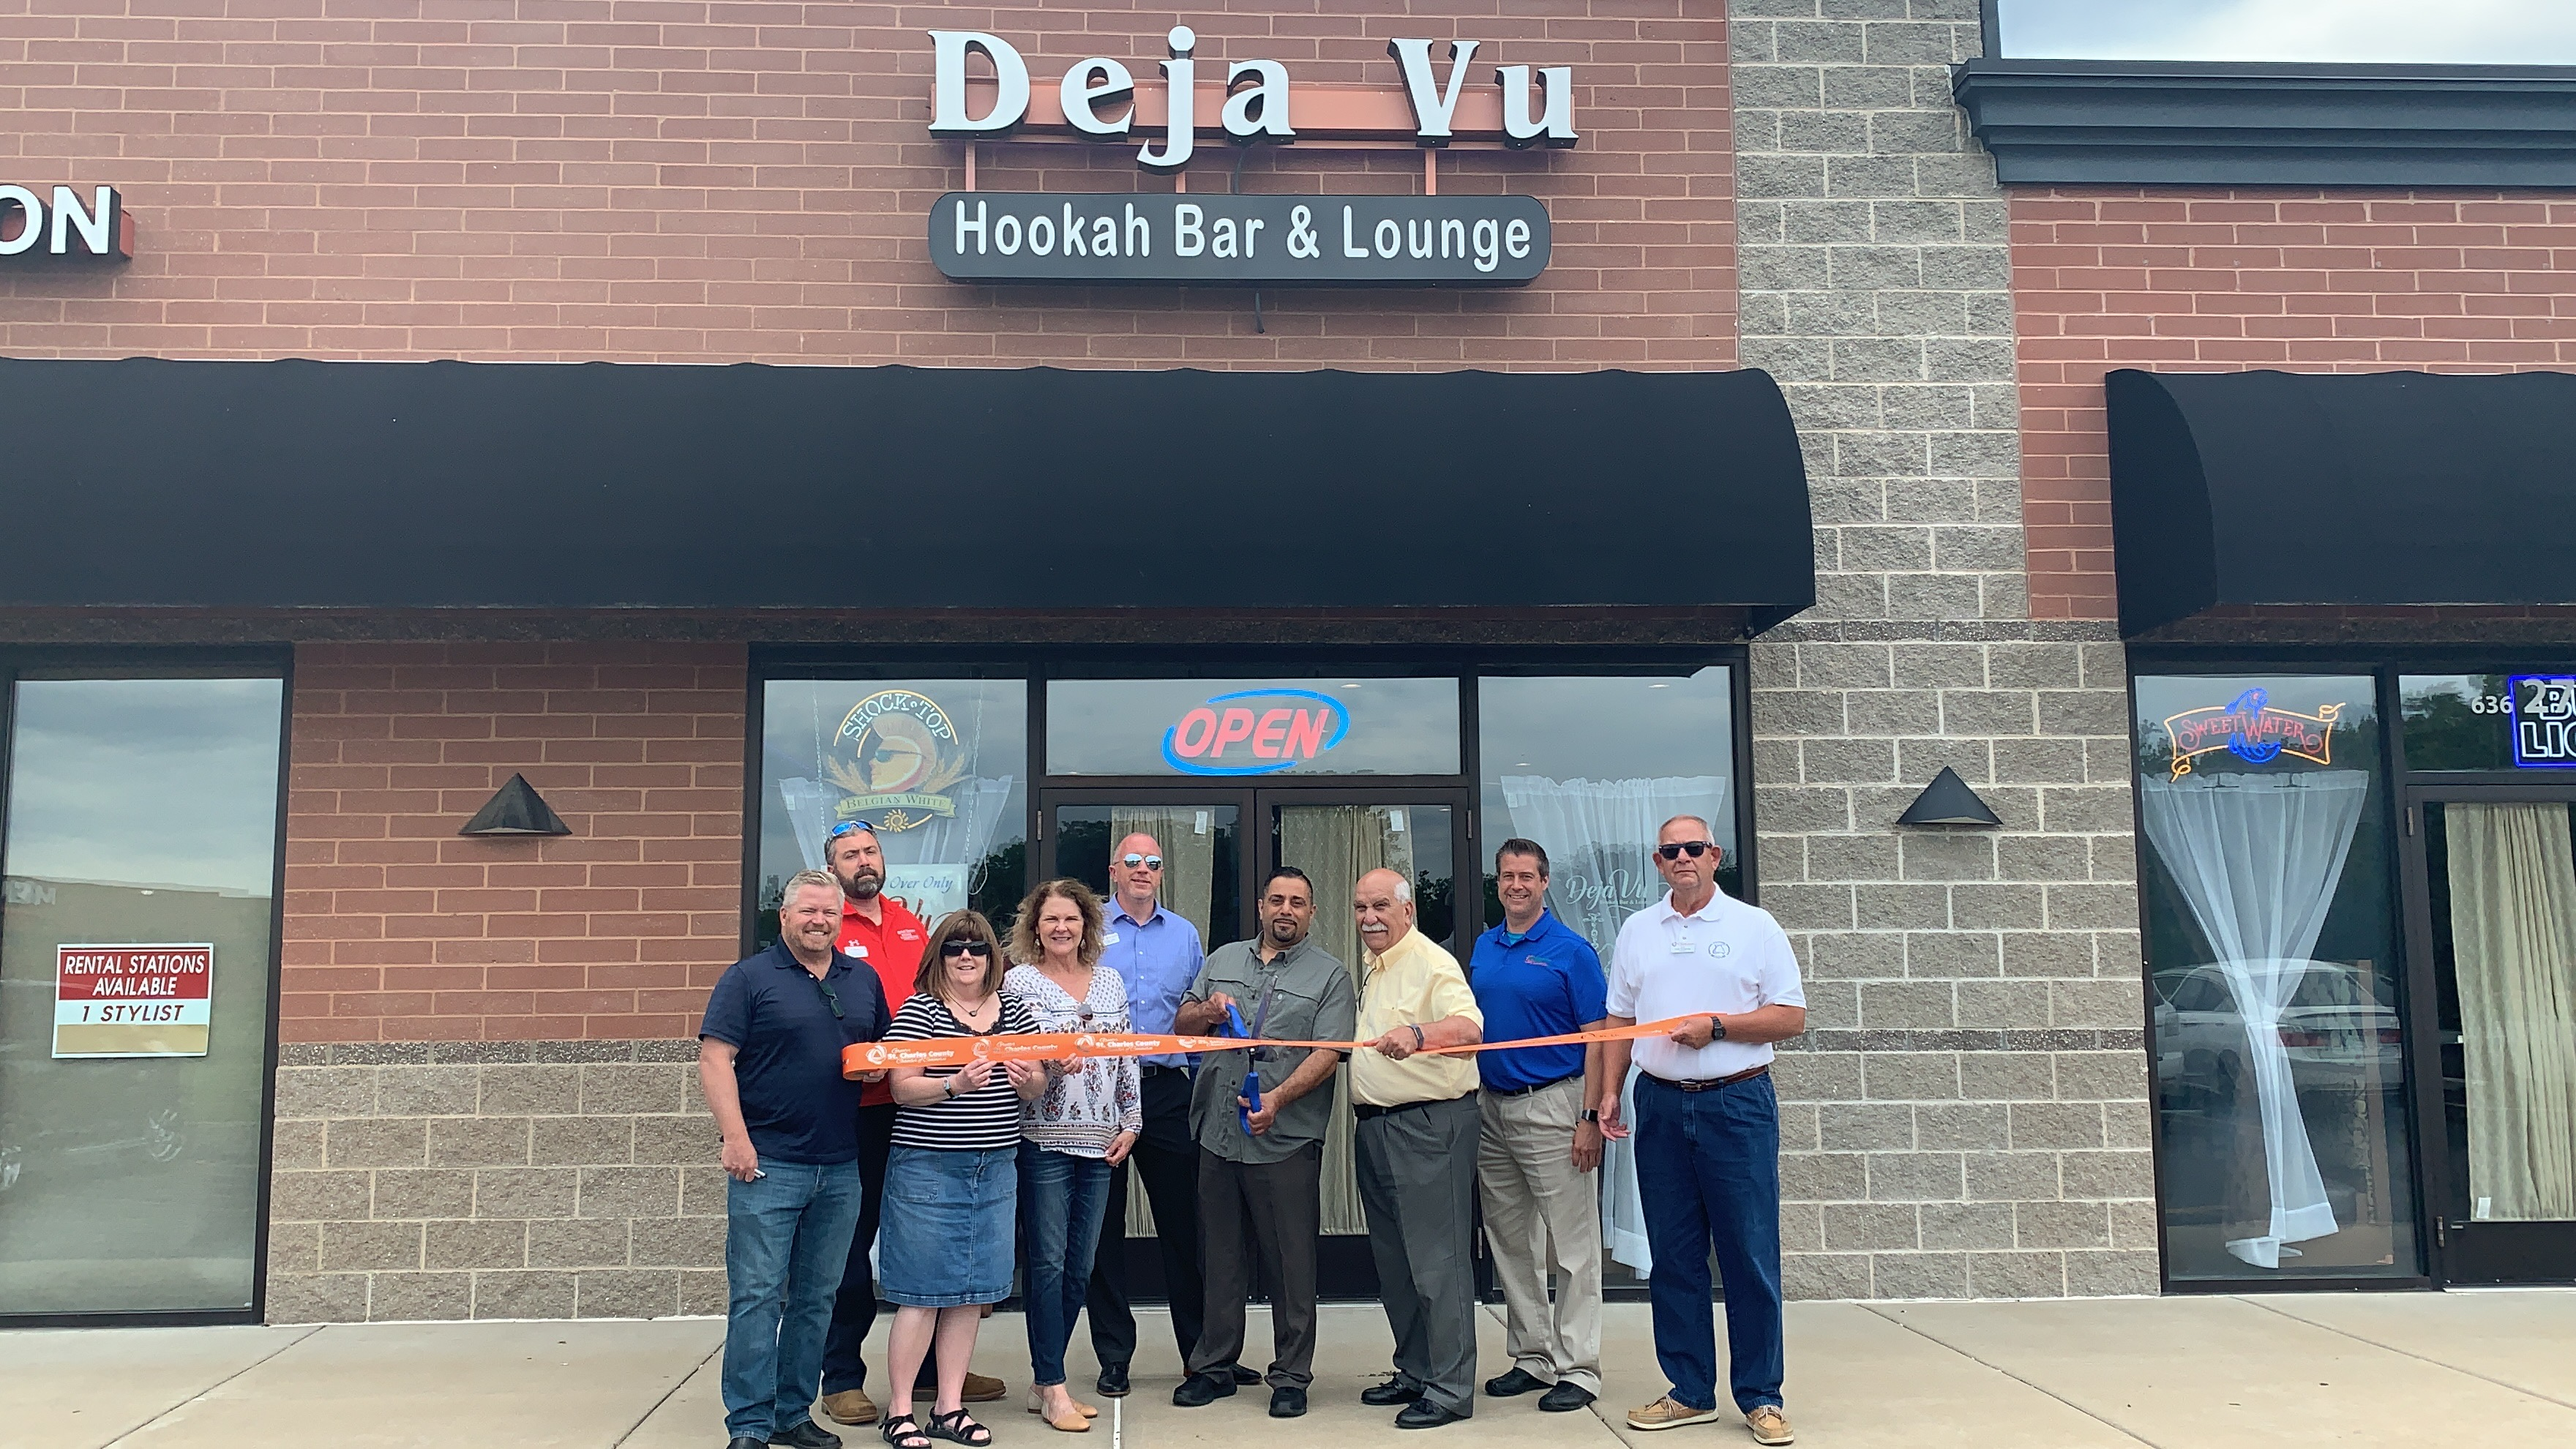 Déjà Vu Hookah Bar and Lounge Celebrates Grand Opening with Ribbon Cutting